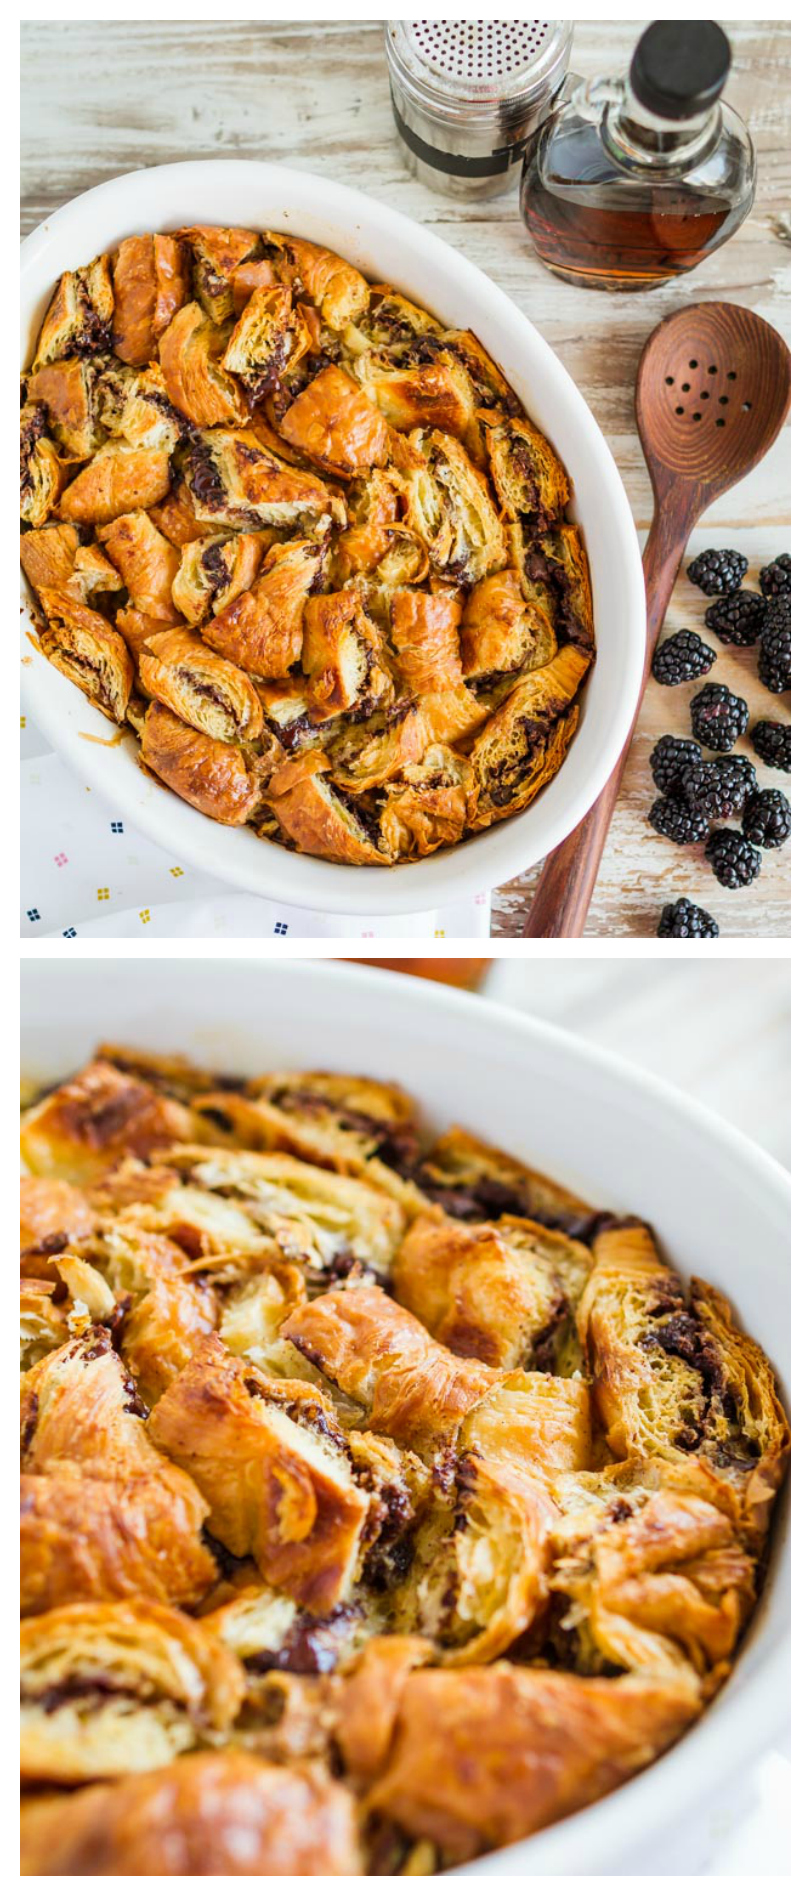 Nutella Stuffed Croissant French Toast Casserole | Breakfast Casserole Recipes